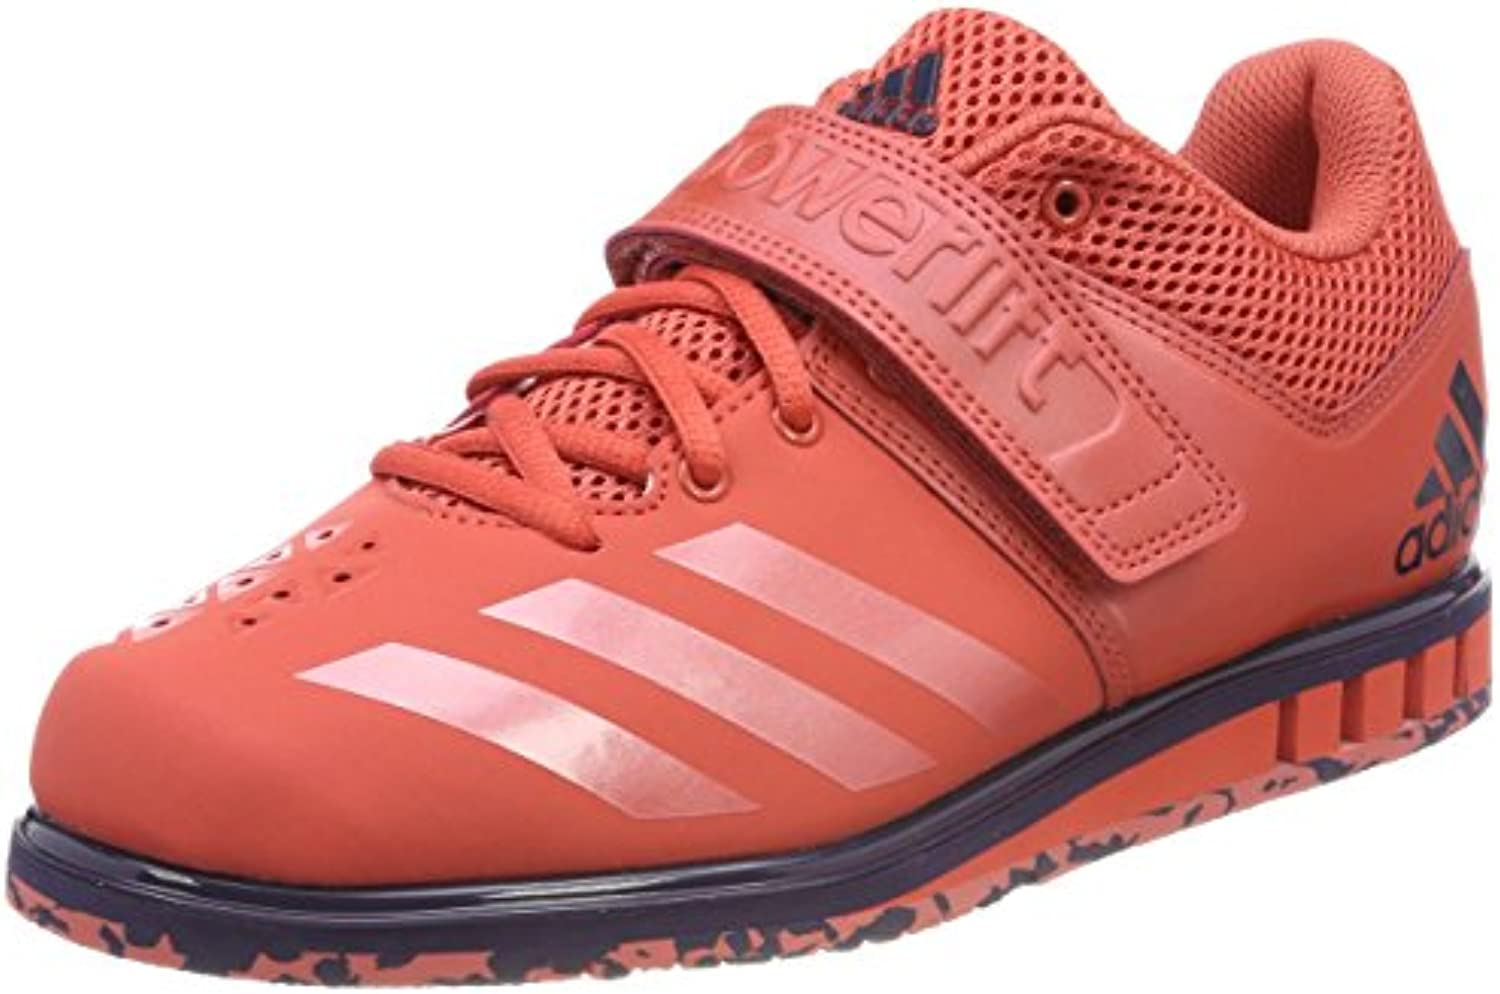 ADIDAS Powerlift PERFORMANCE Powerlift ADIDAS 3.1 Chaussure d'haltérophilie, Multicolore (Trace Scarlet/Trace Scarlet/Noble Ink... aef46e